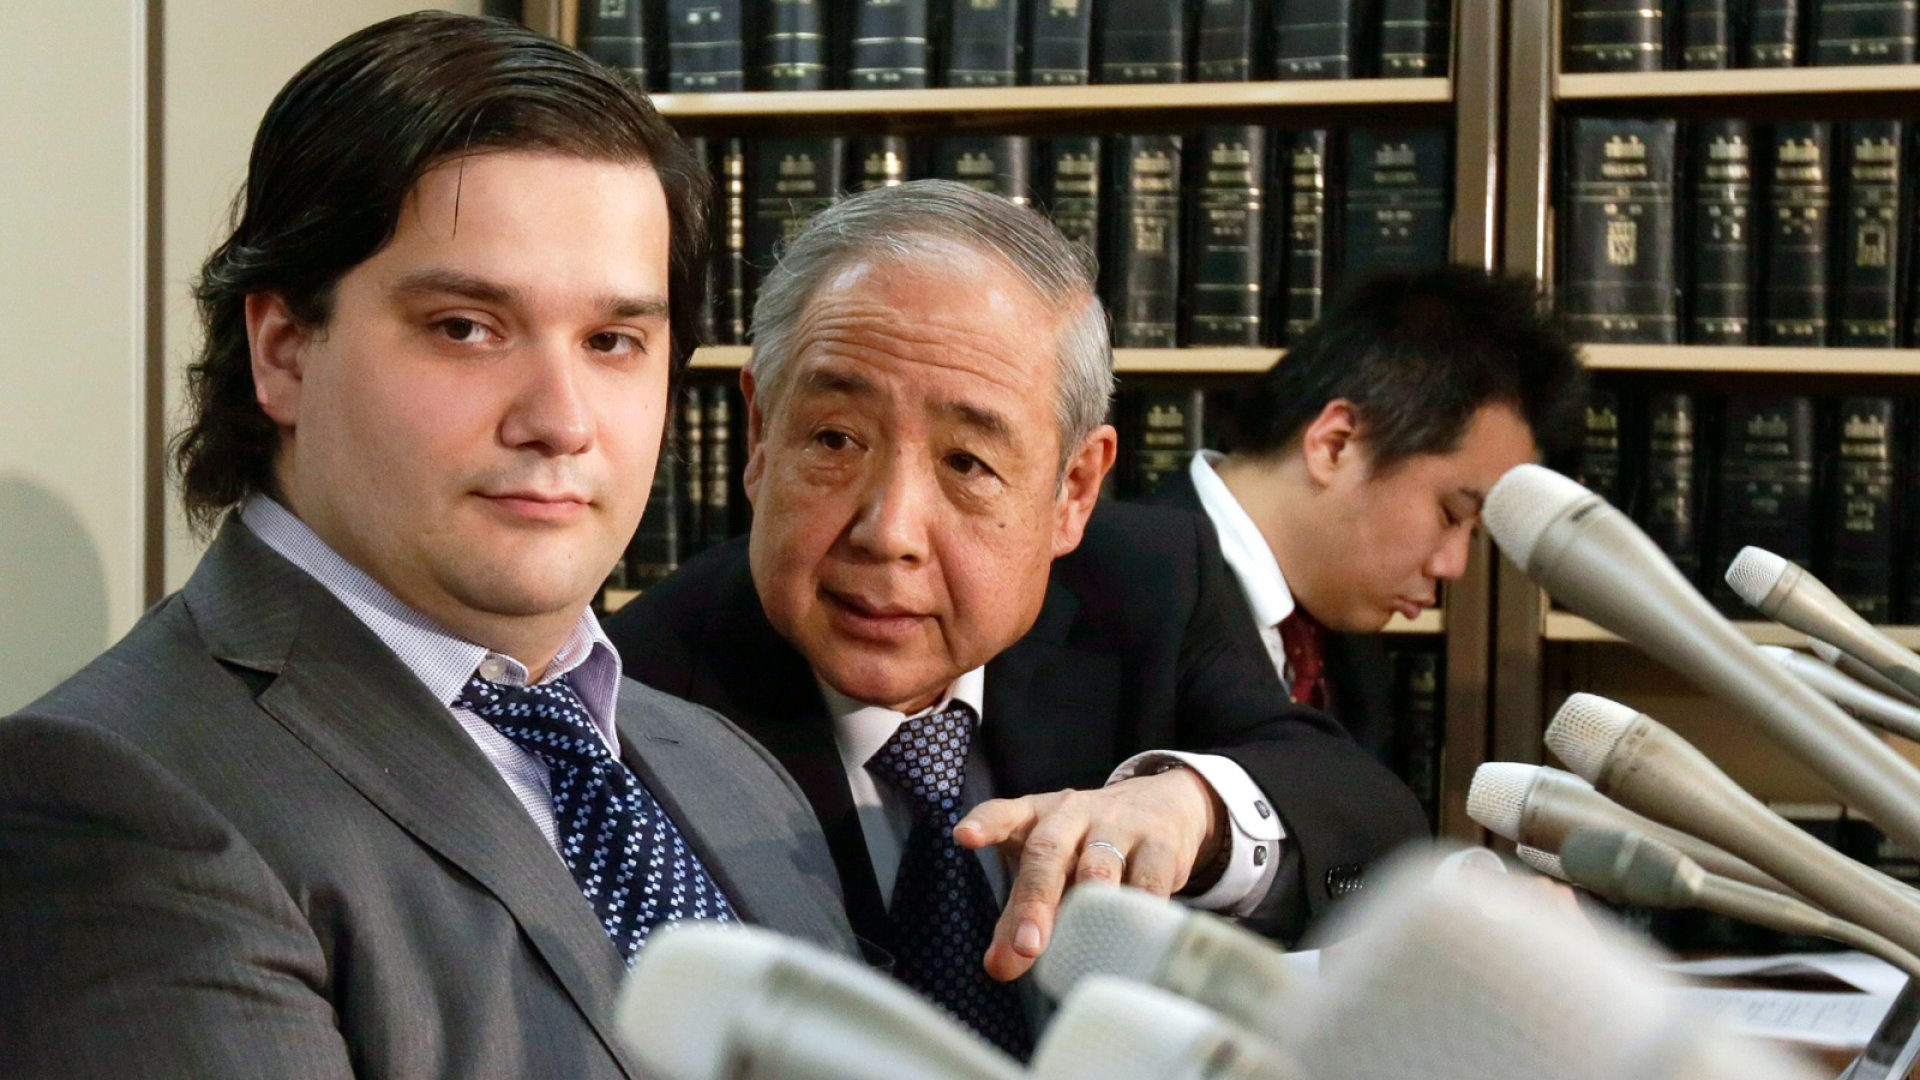 Mt. Gox CEO Mark Karpeles apologizes after filing for bankruptcy during a press conference Friday in Tokyo, Japan.